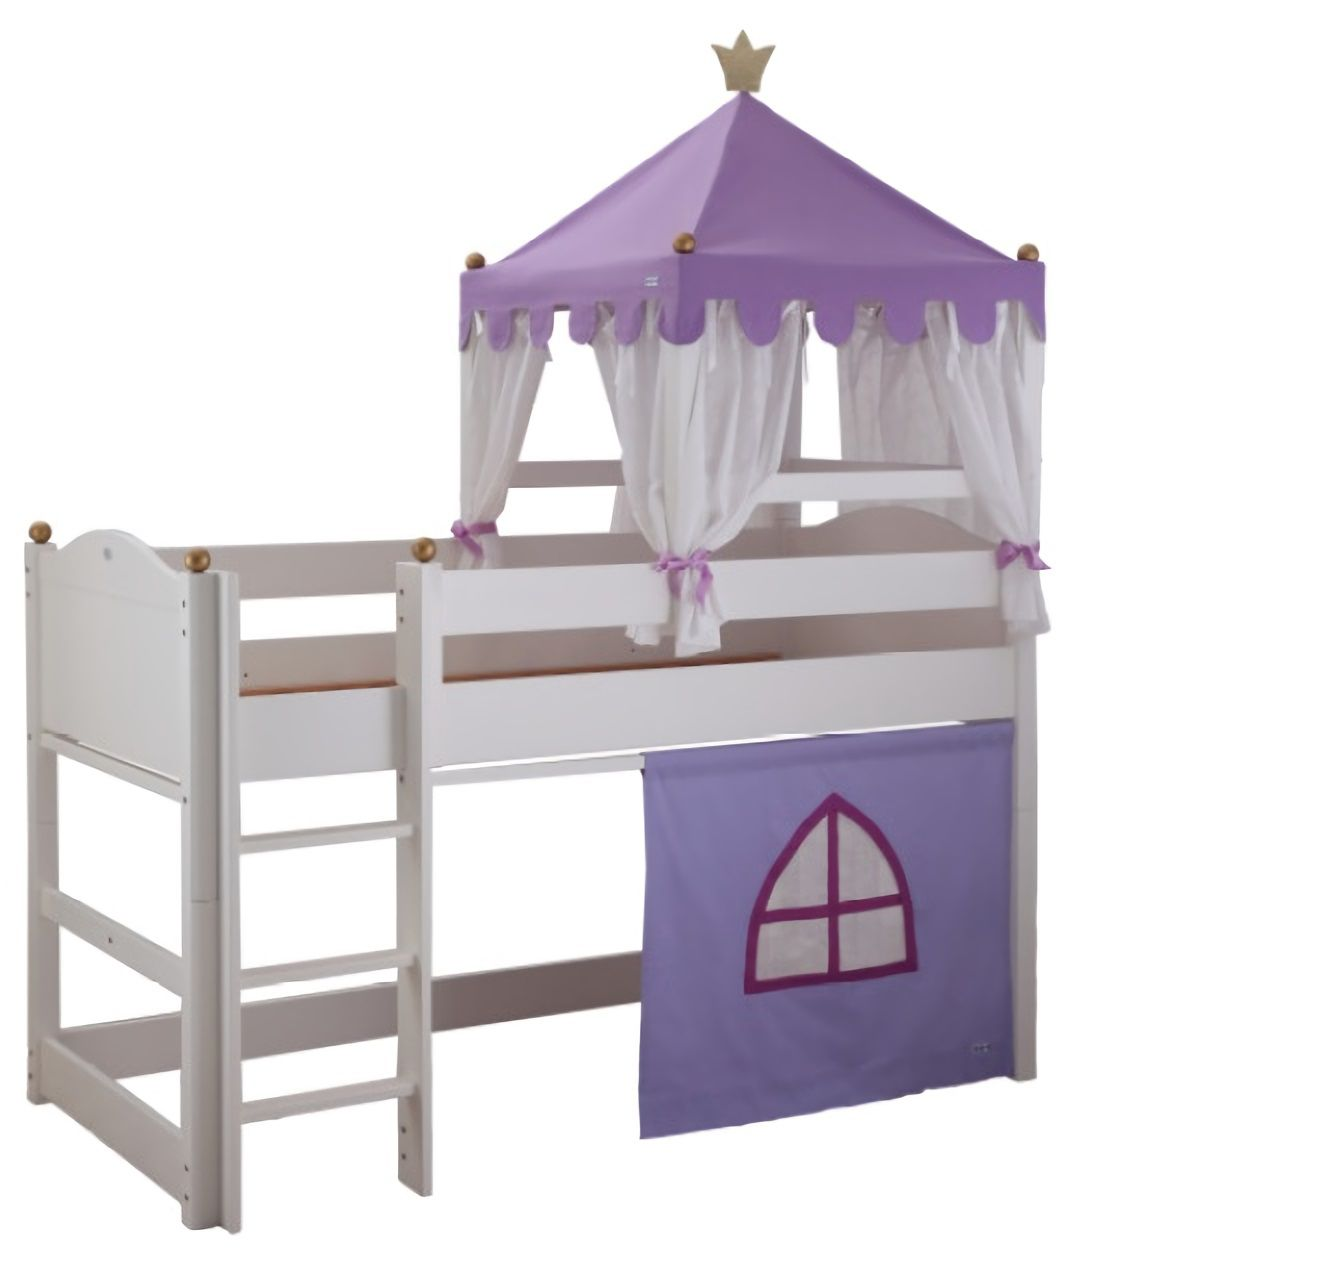 Buy Cheap Canopy Bed Compare Beds Prices For Best Uk Deals